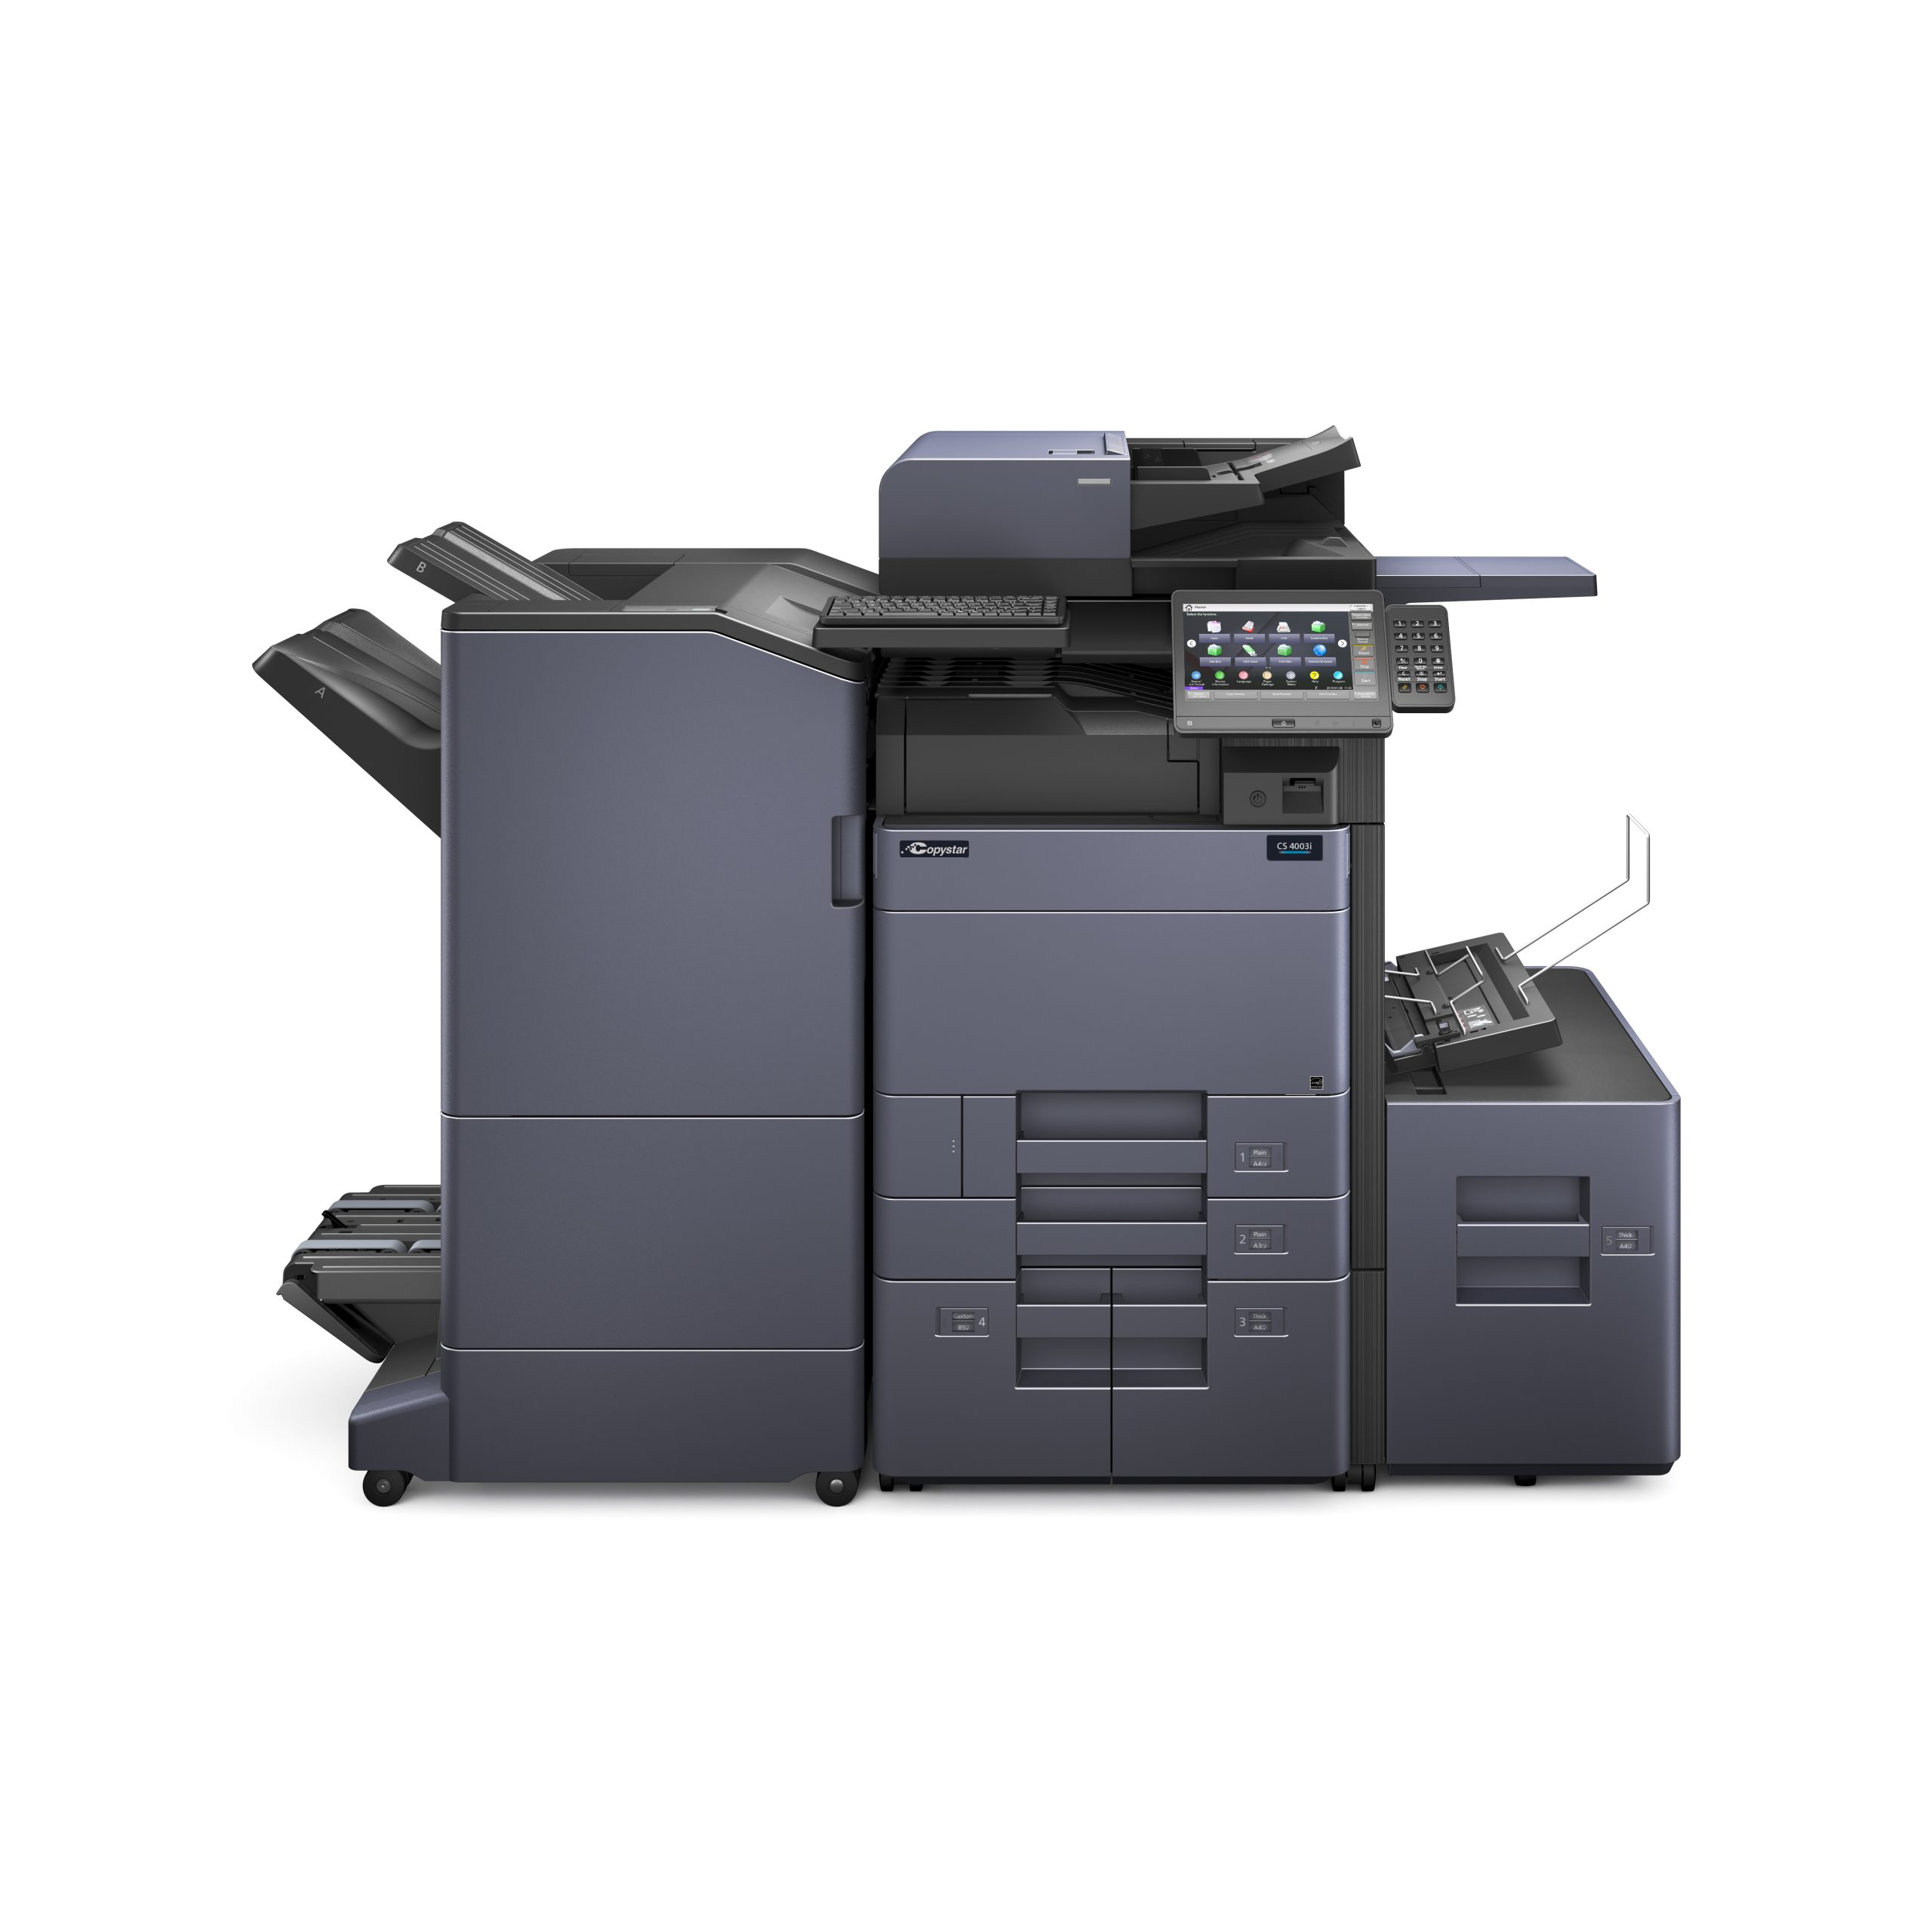 kyocera CS_4003i Lease Copier Florida